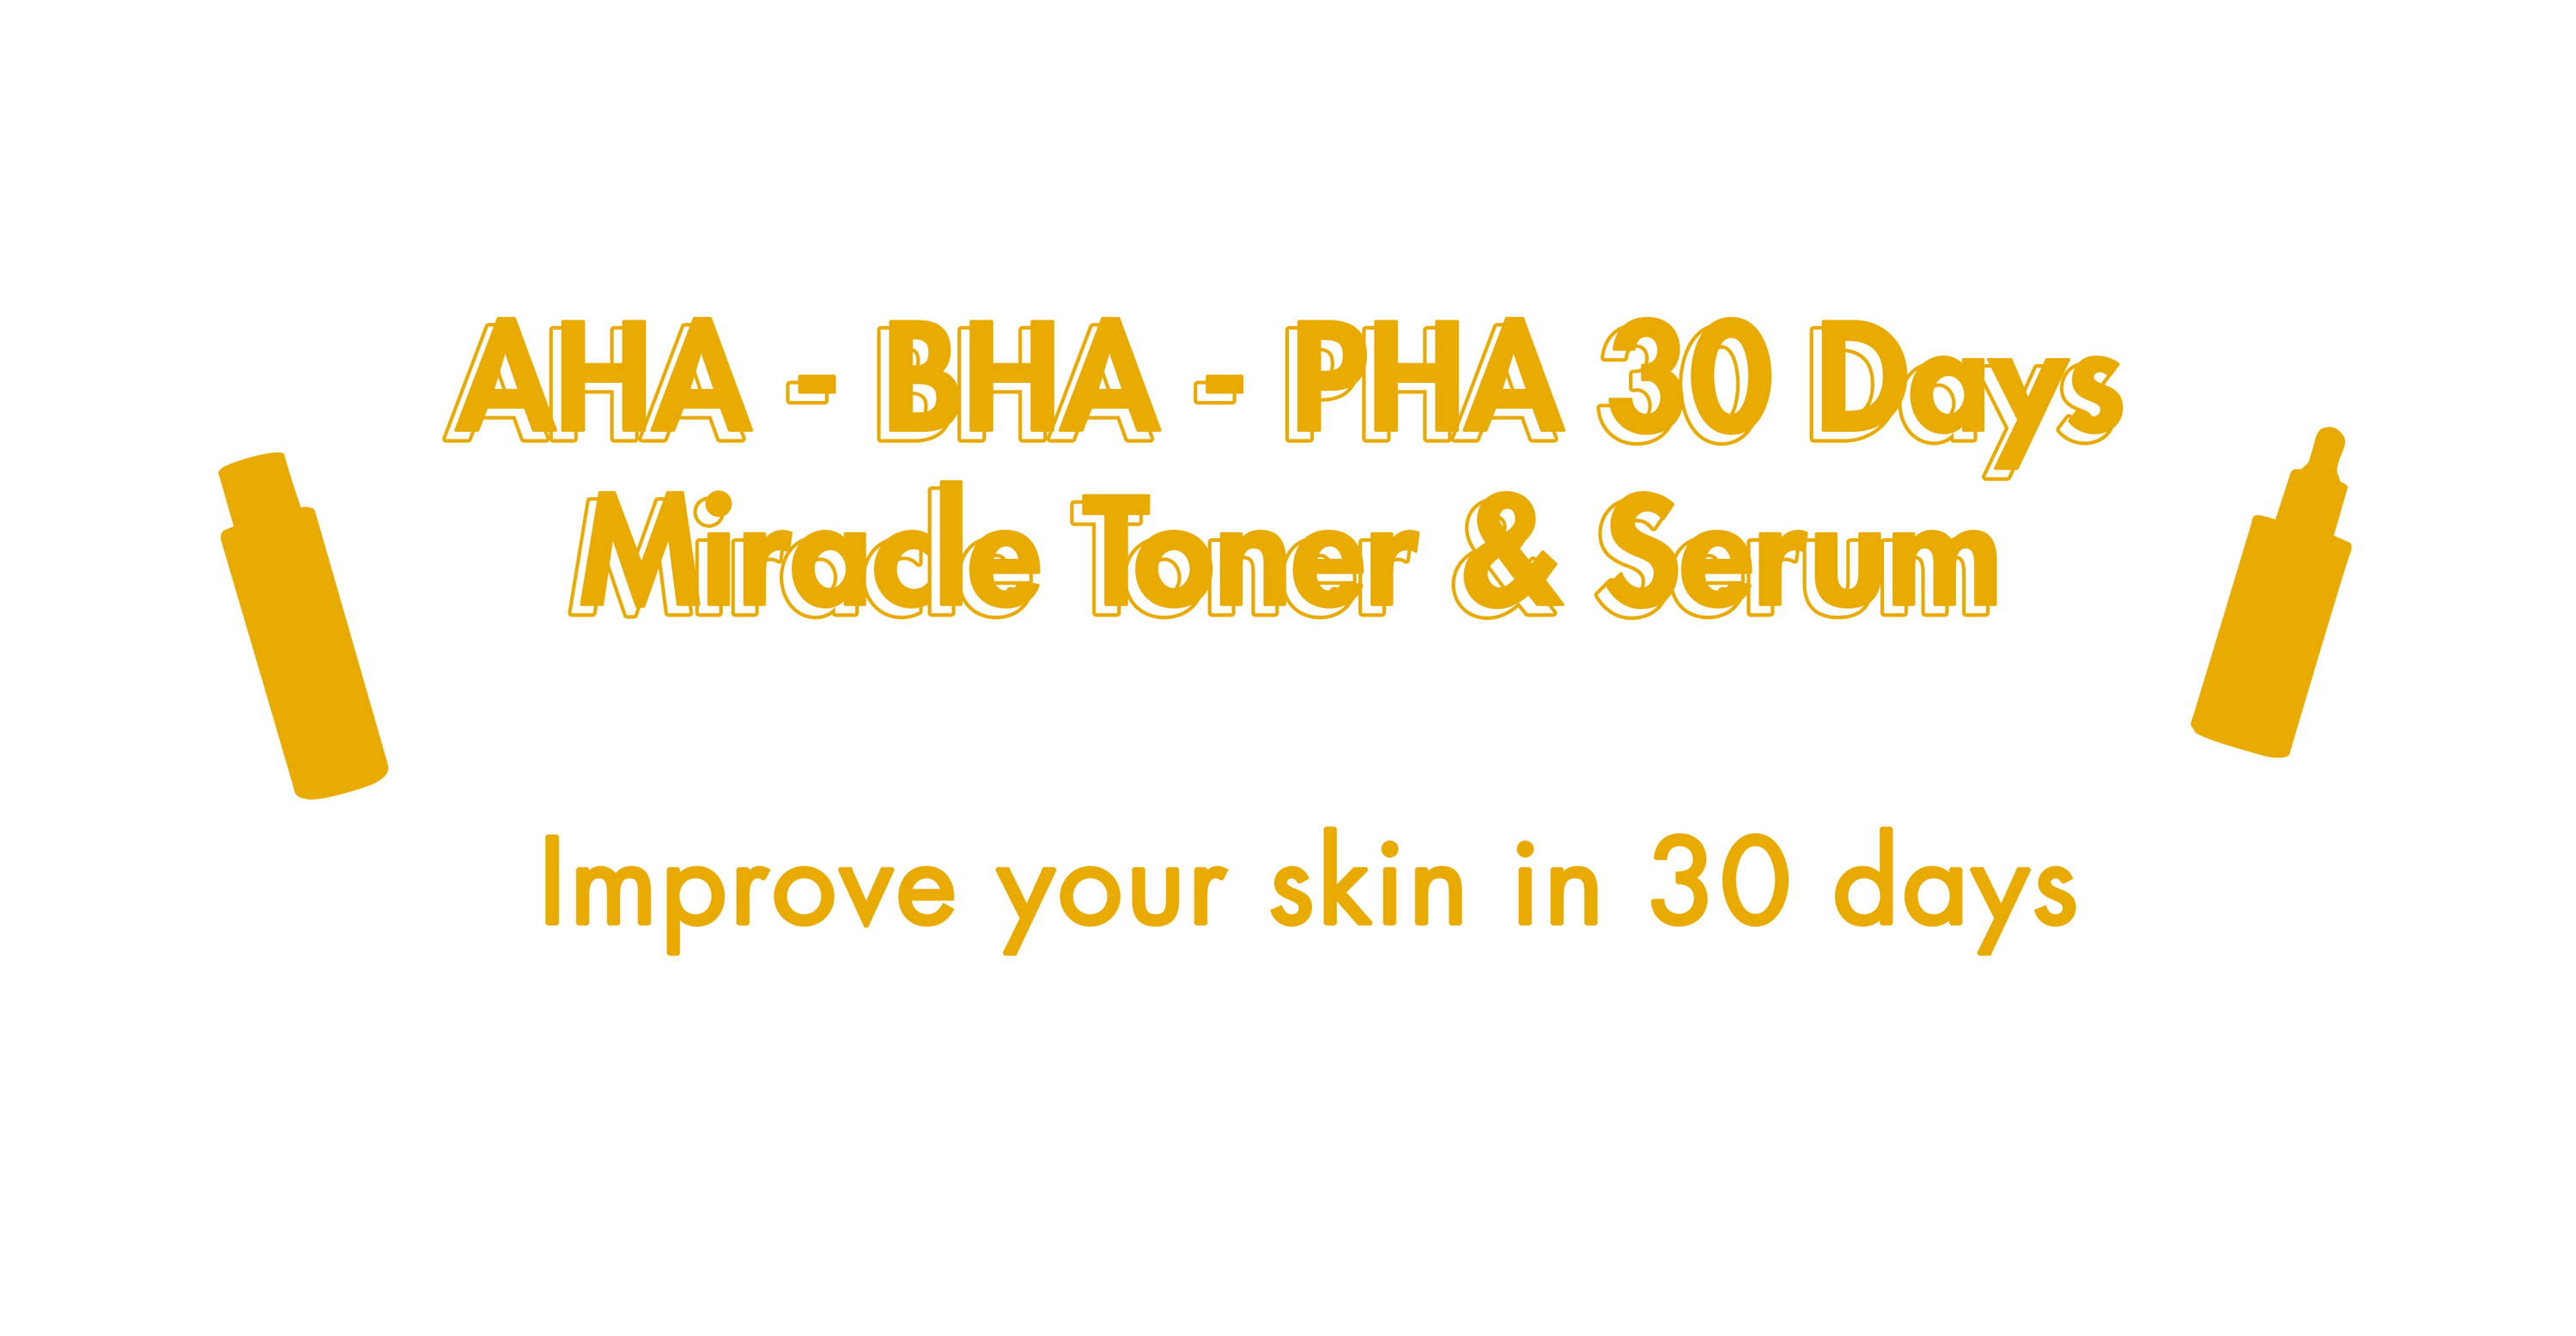 Improve your skin in 30 days